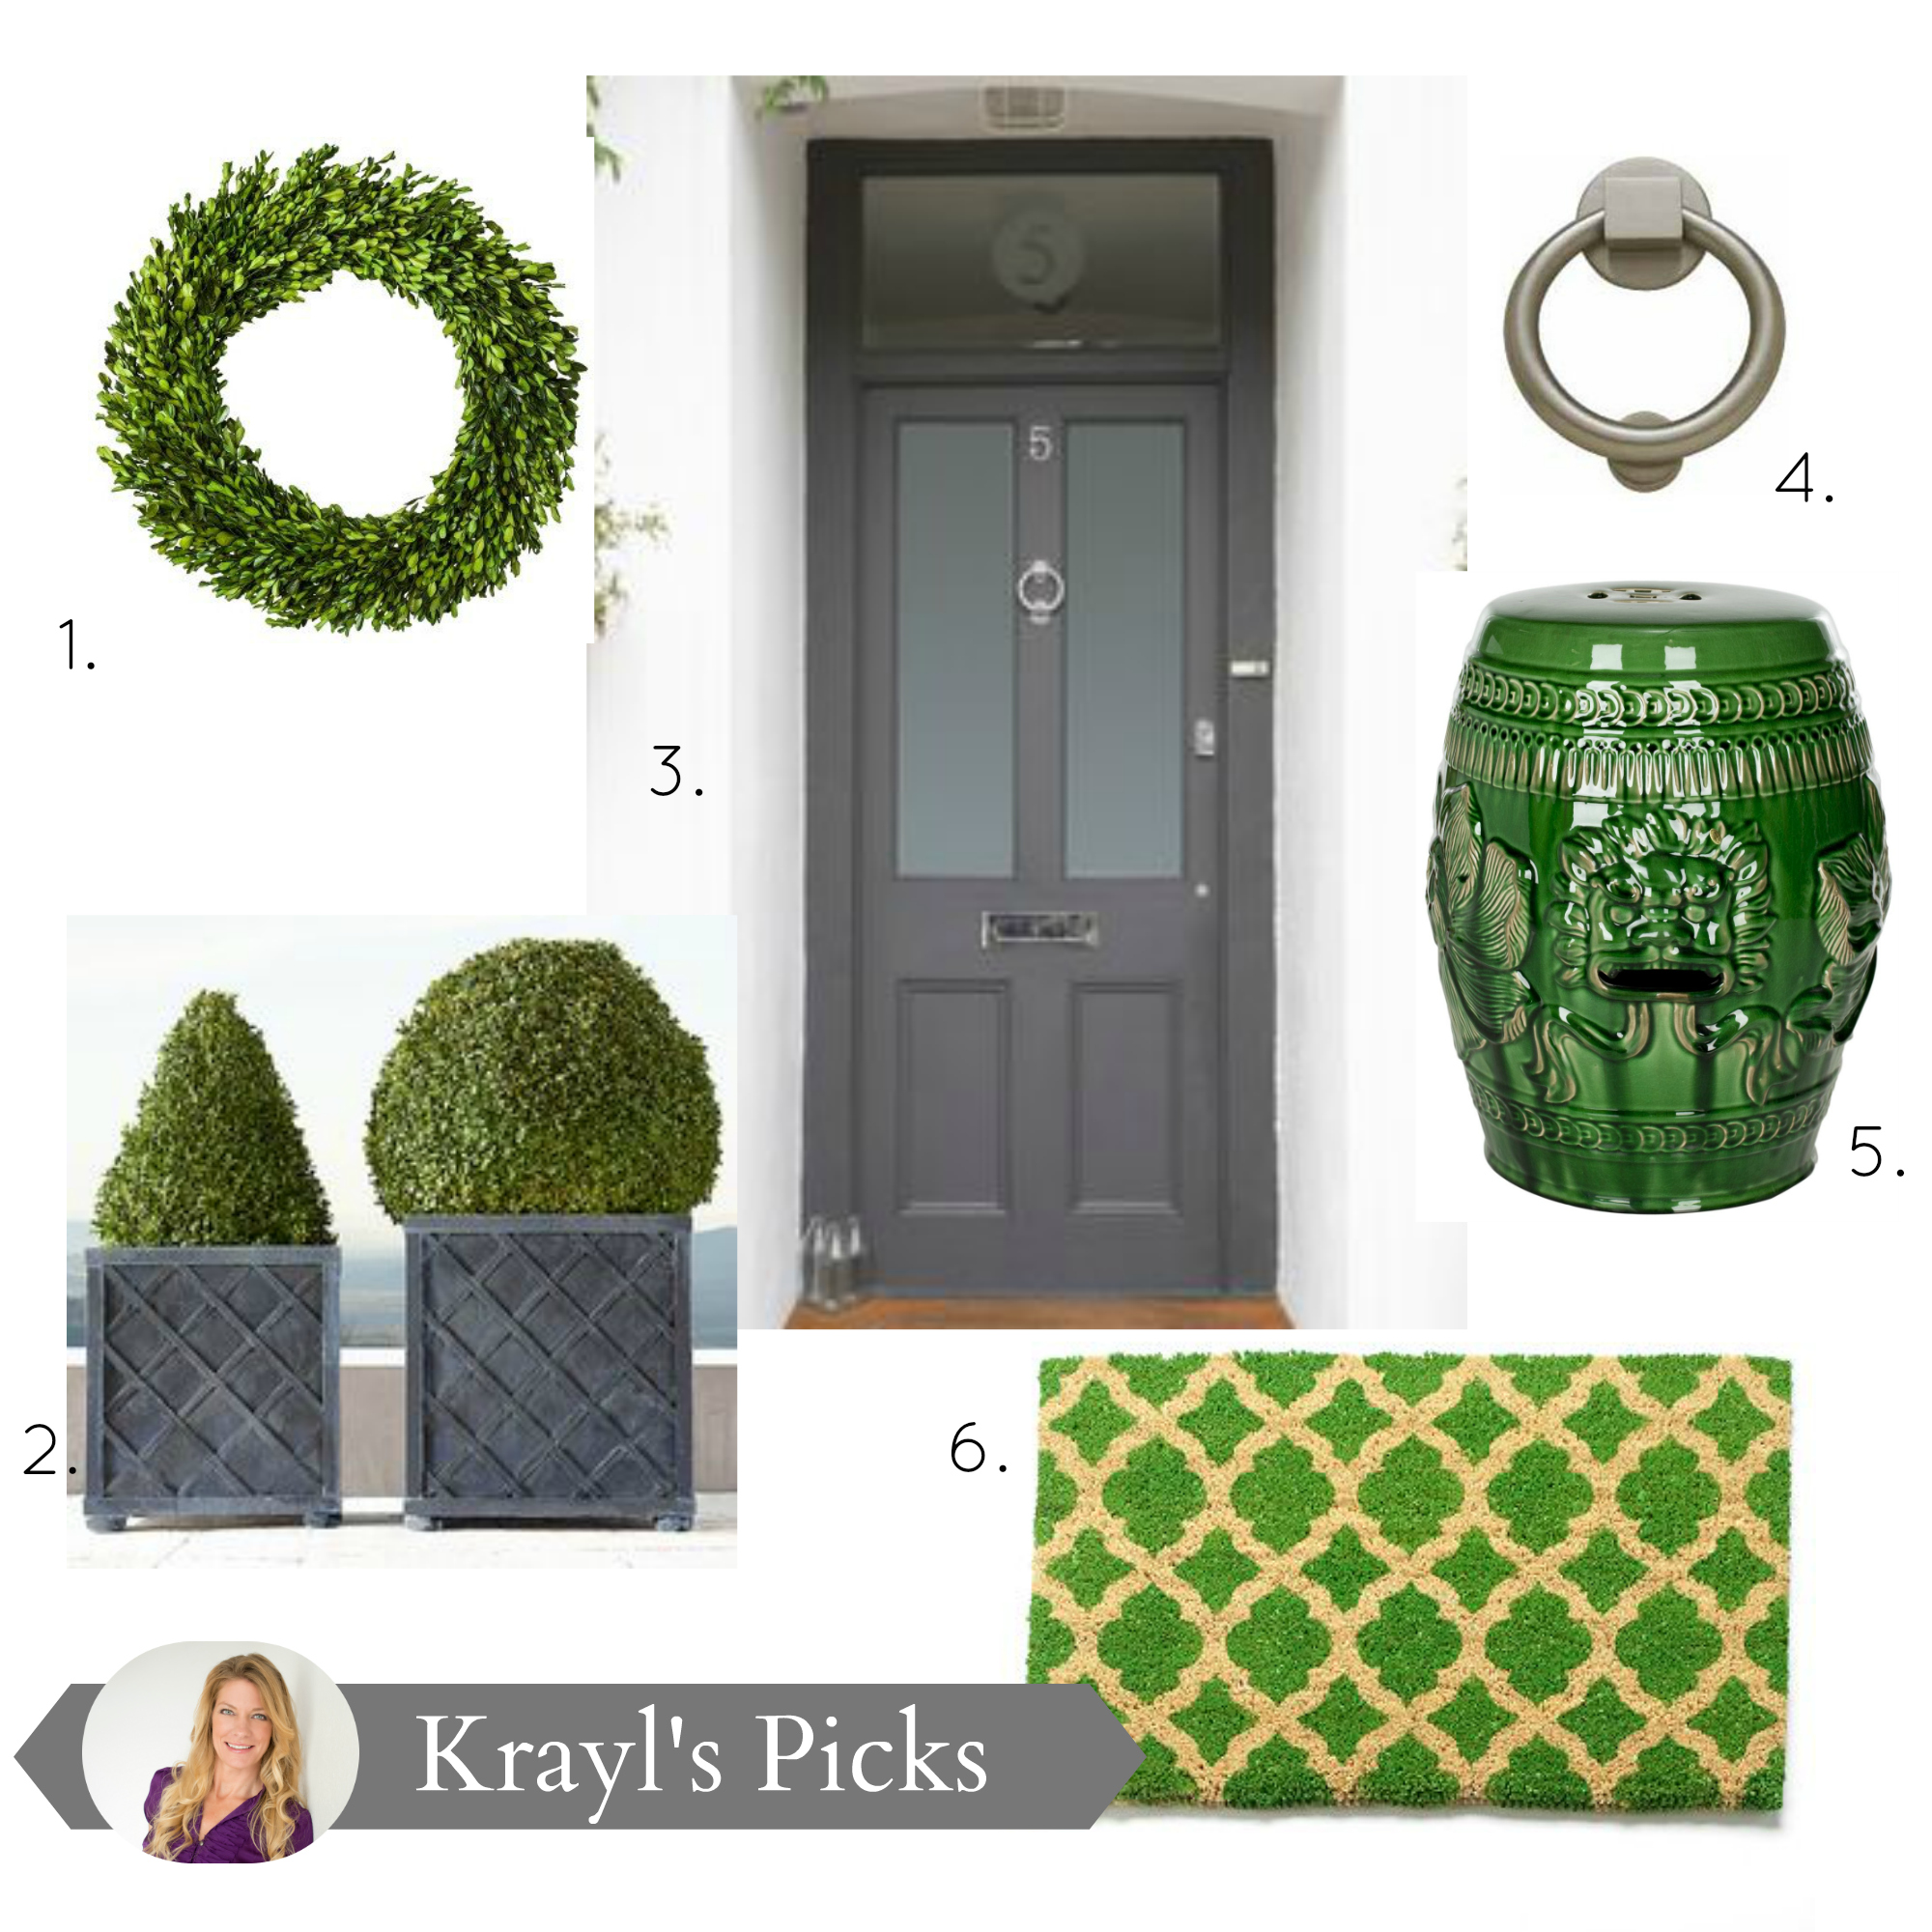 Designing a green and gray entranceway for your home by Krayl Funch